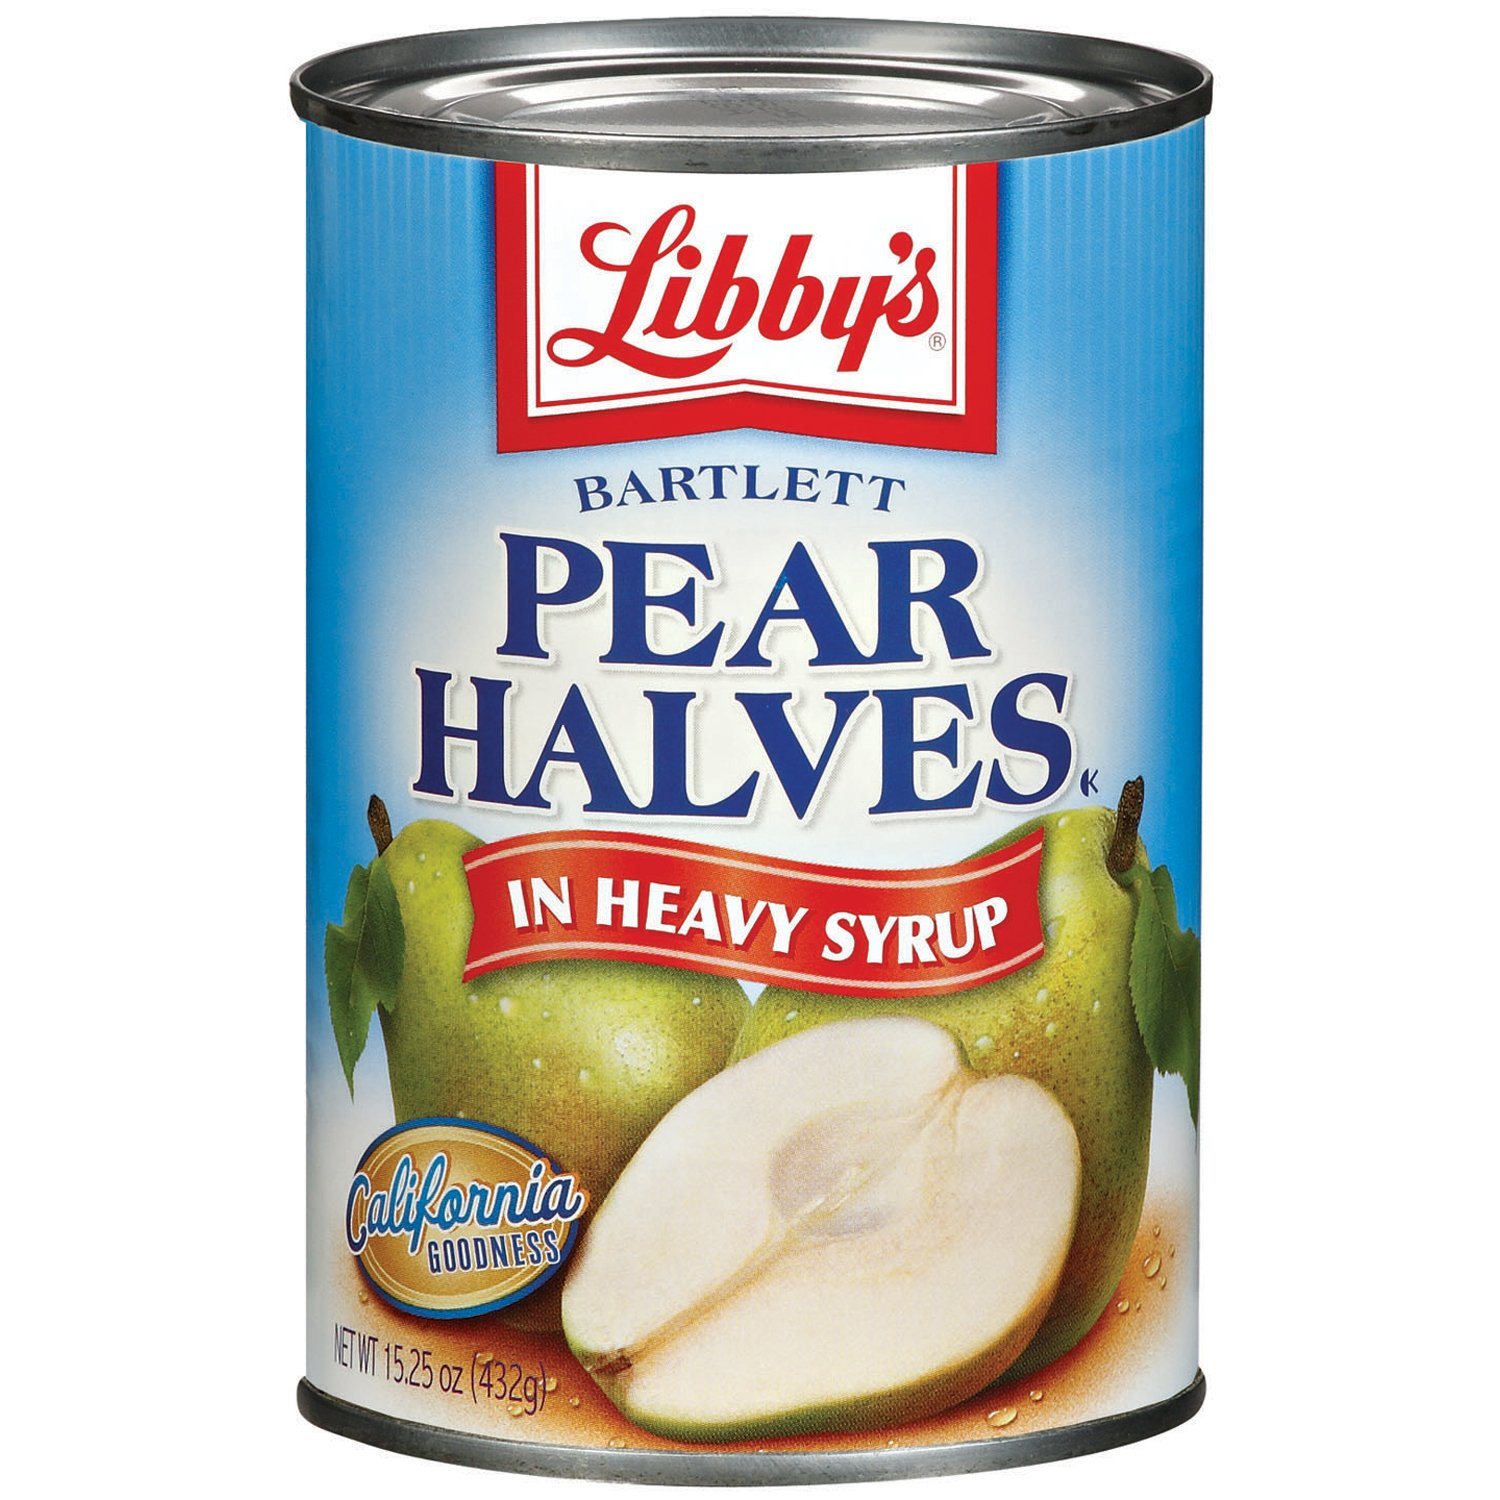 Libby's Pear Halves In Heavy Syrup, 14 Pound (Pack of 12) by Libby's